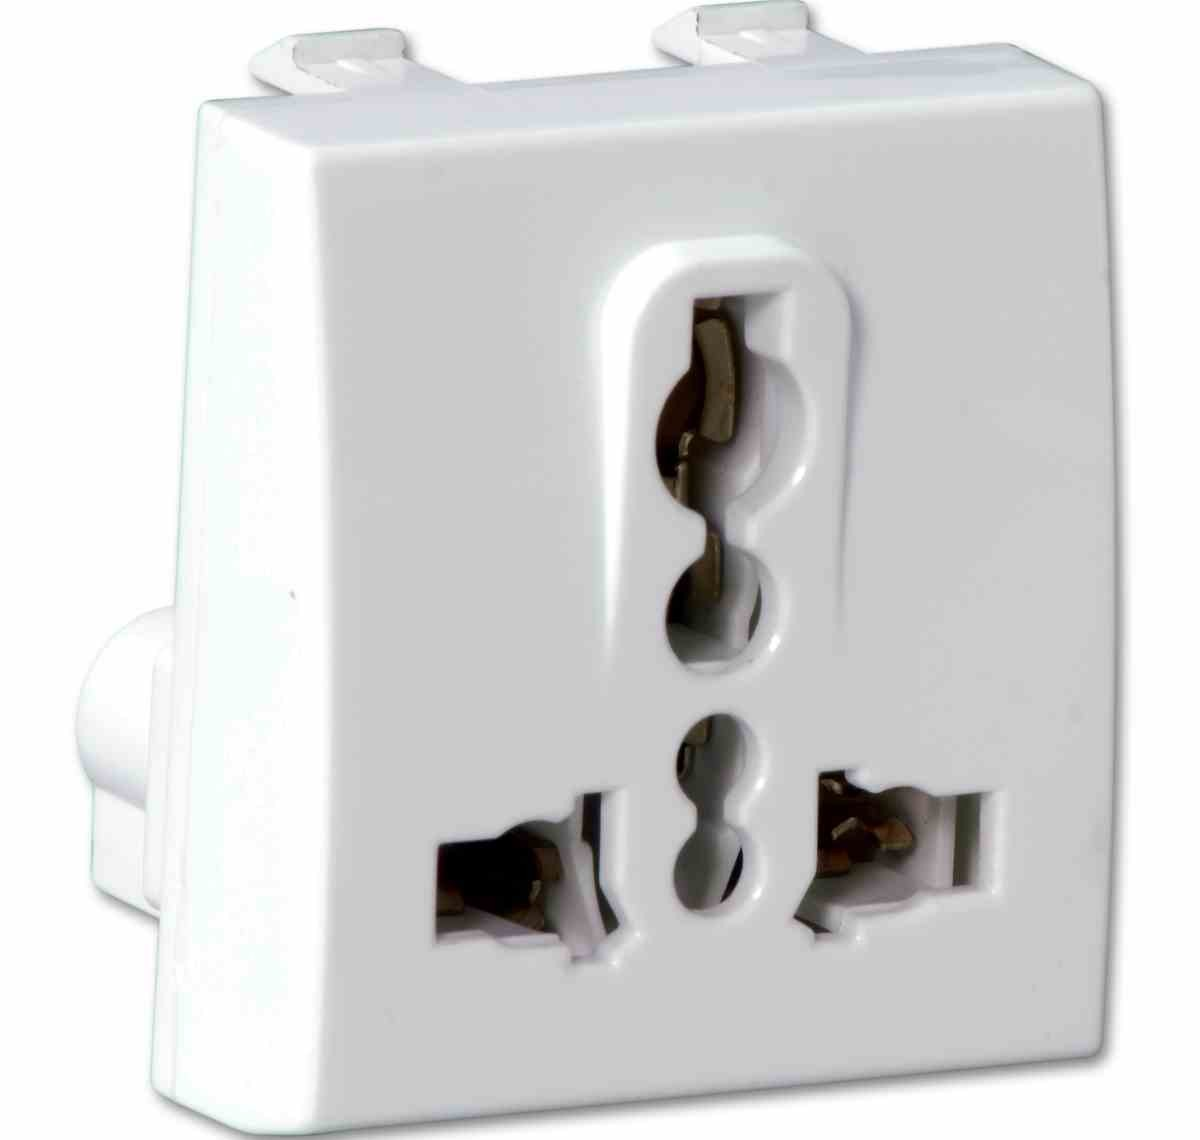 2 Module Universal Socket - Electrical and Networking, Electrical ...